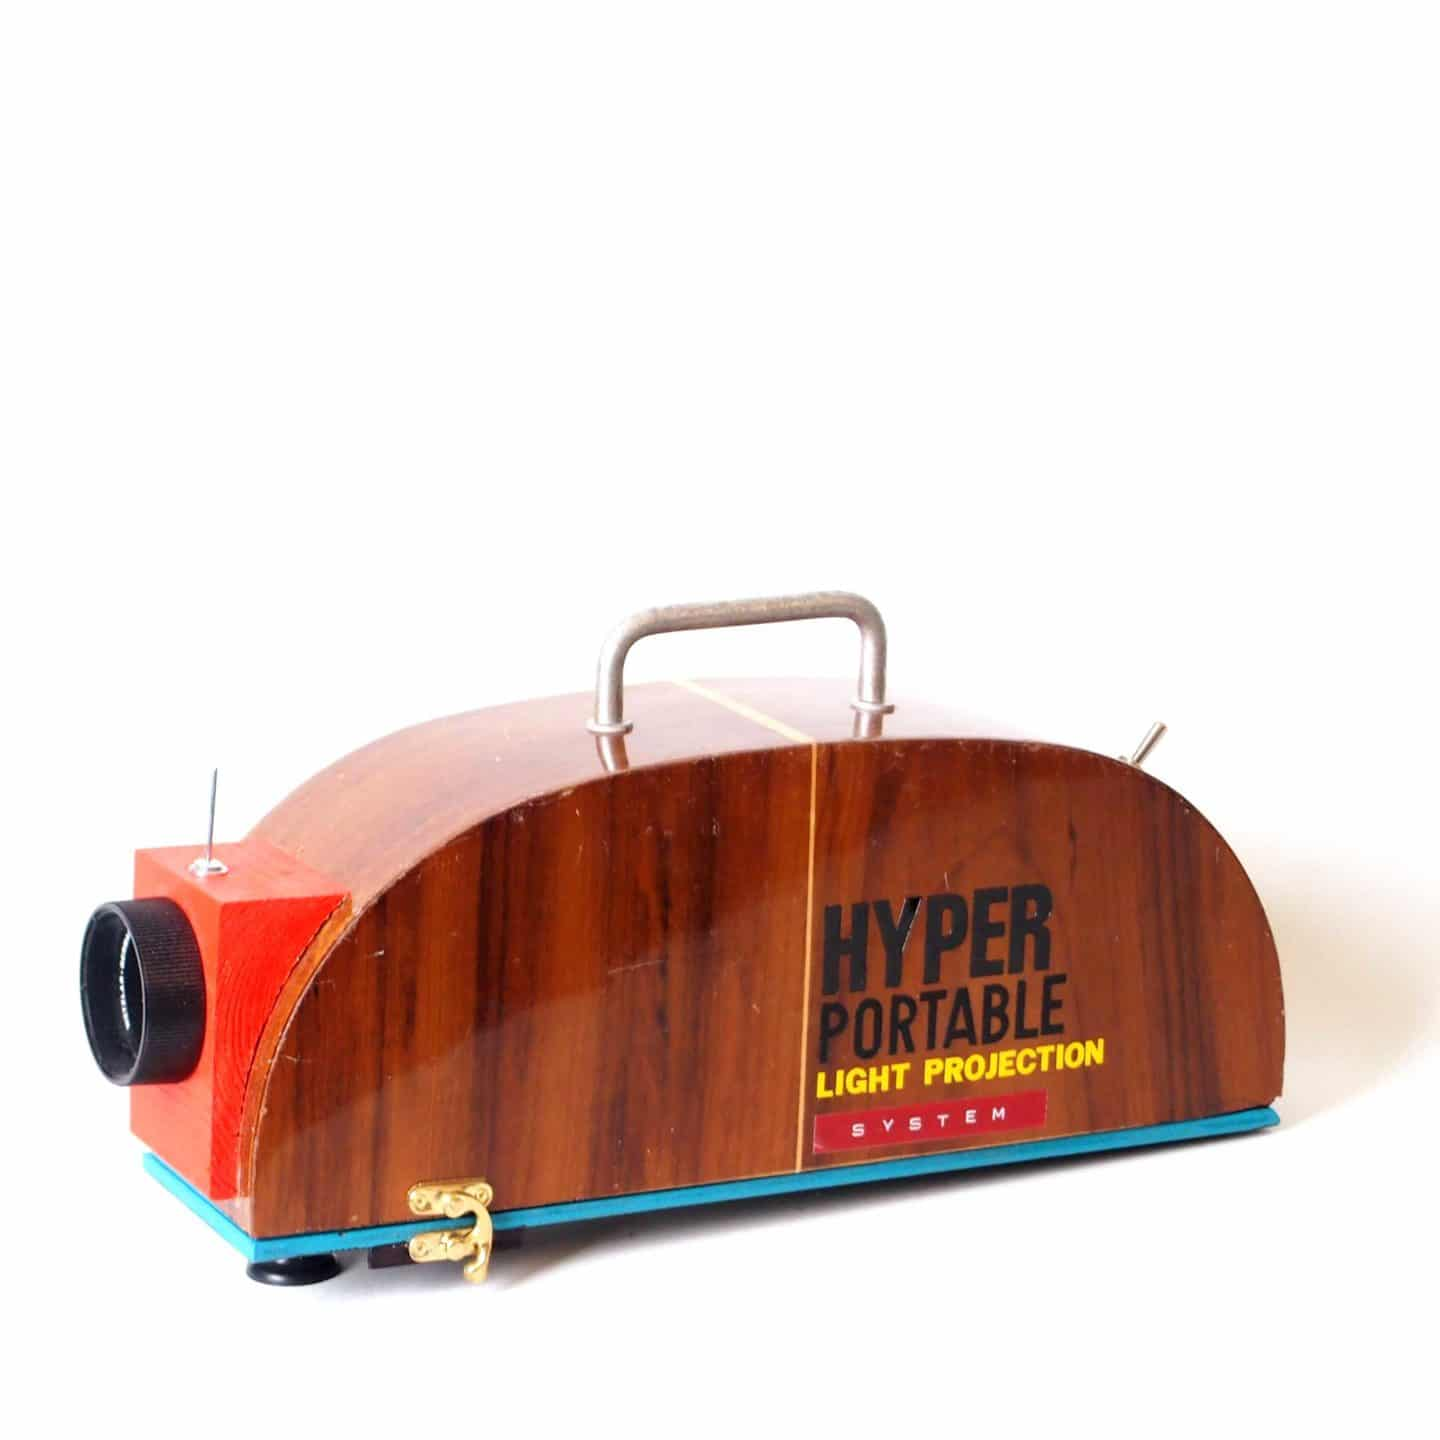 Hyper Portable Light Projection